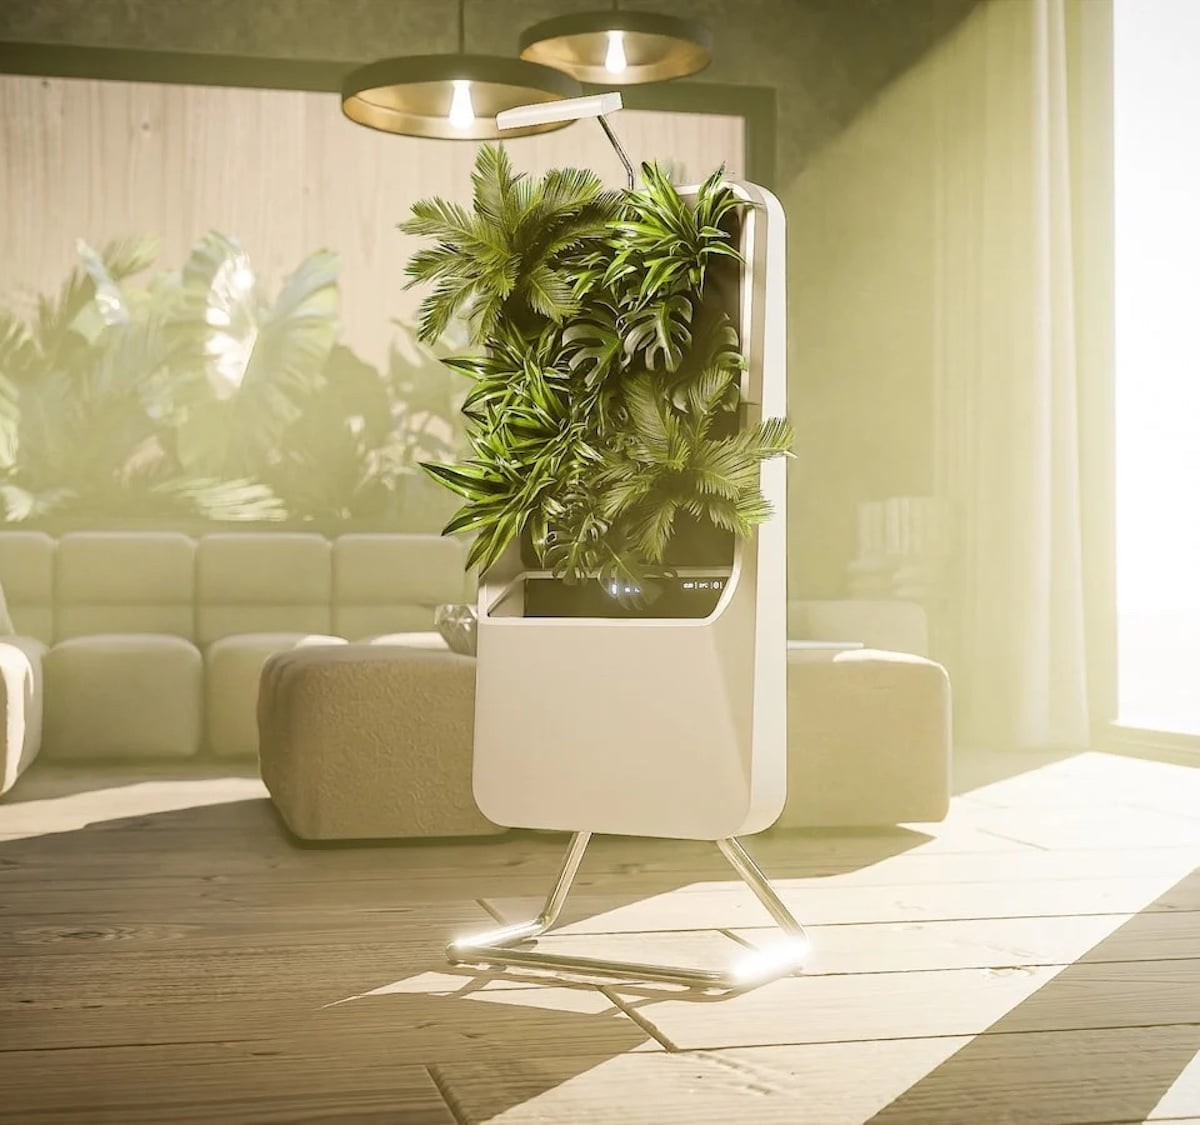 This air-purifying garden filters the air in a natural way thumbnail